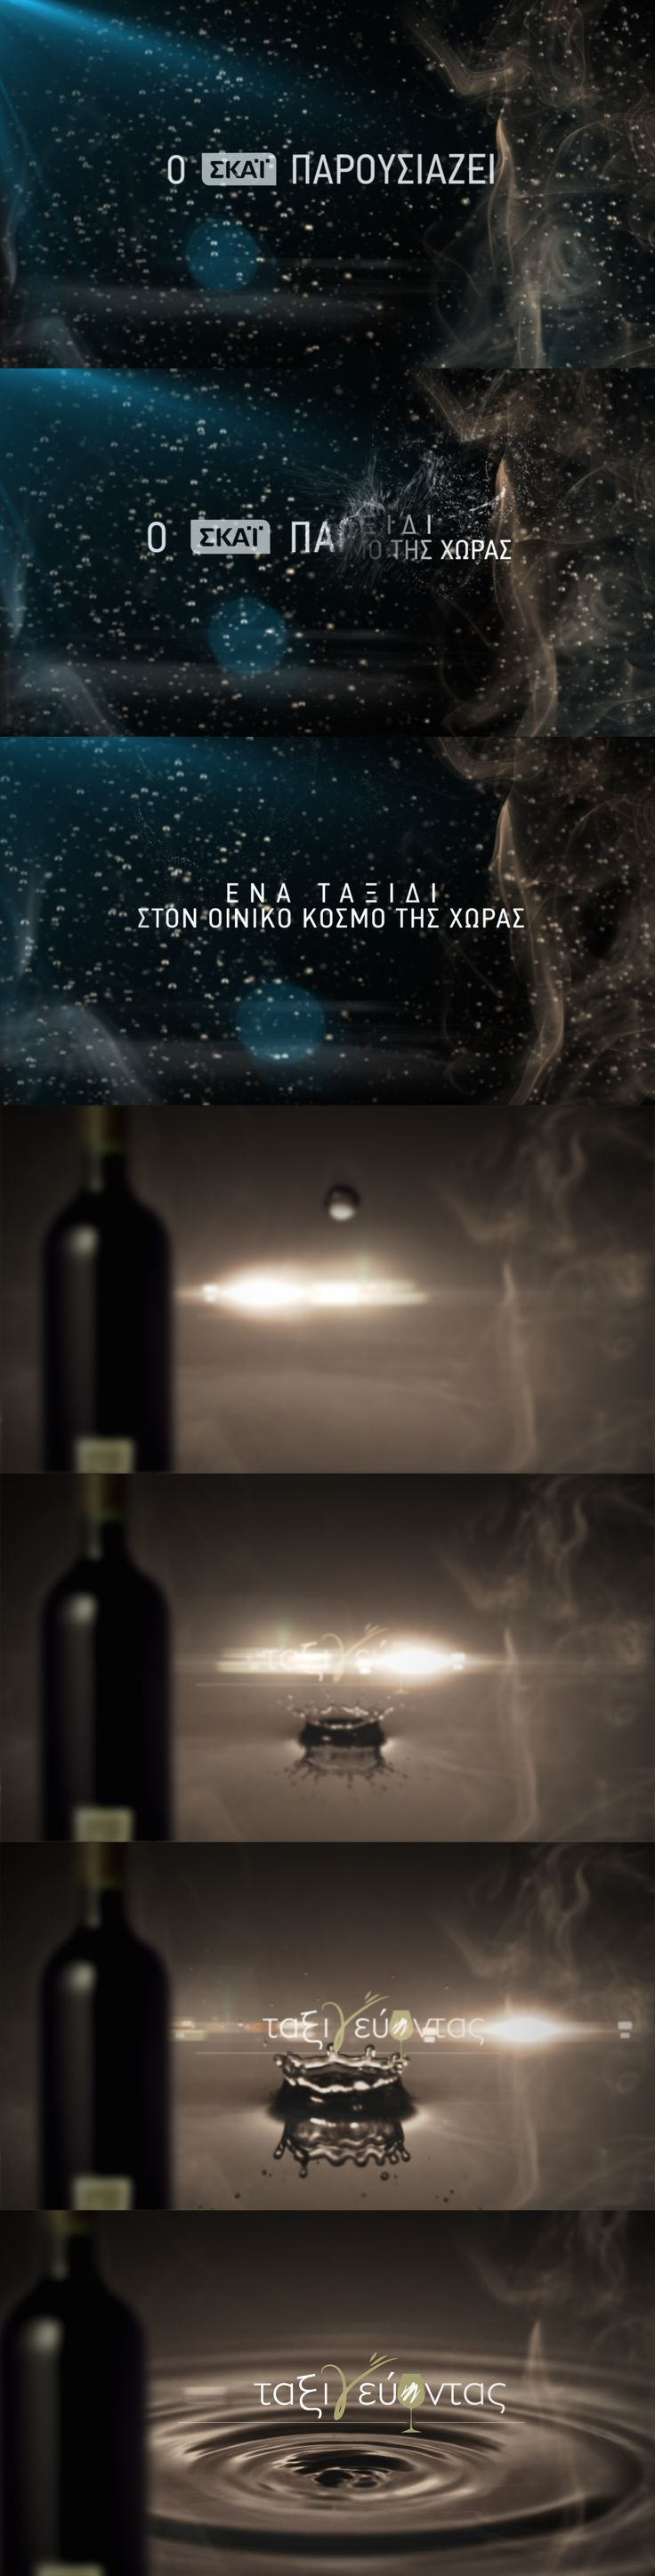 Taksigevontas Wine Show Title Sequence